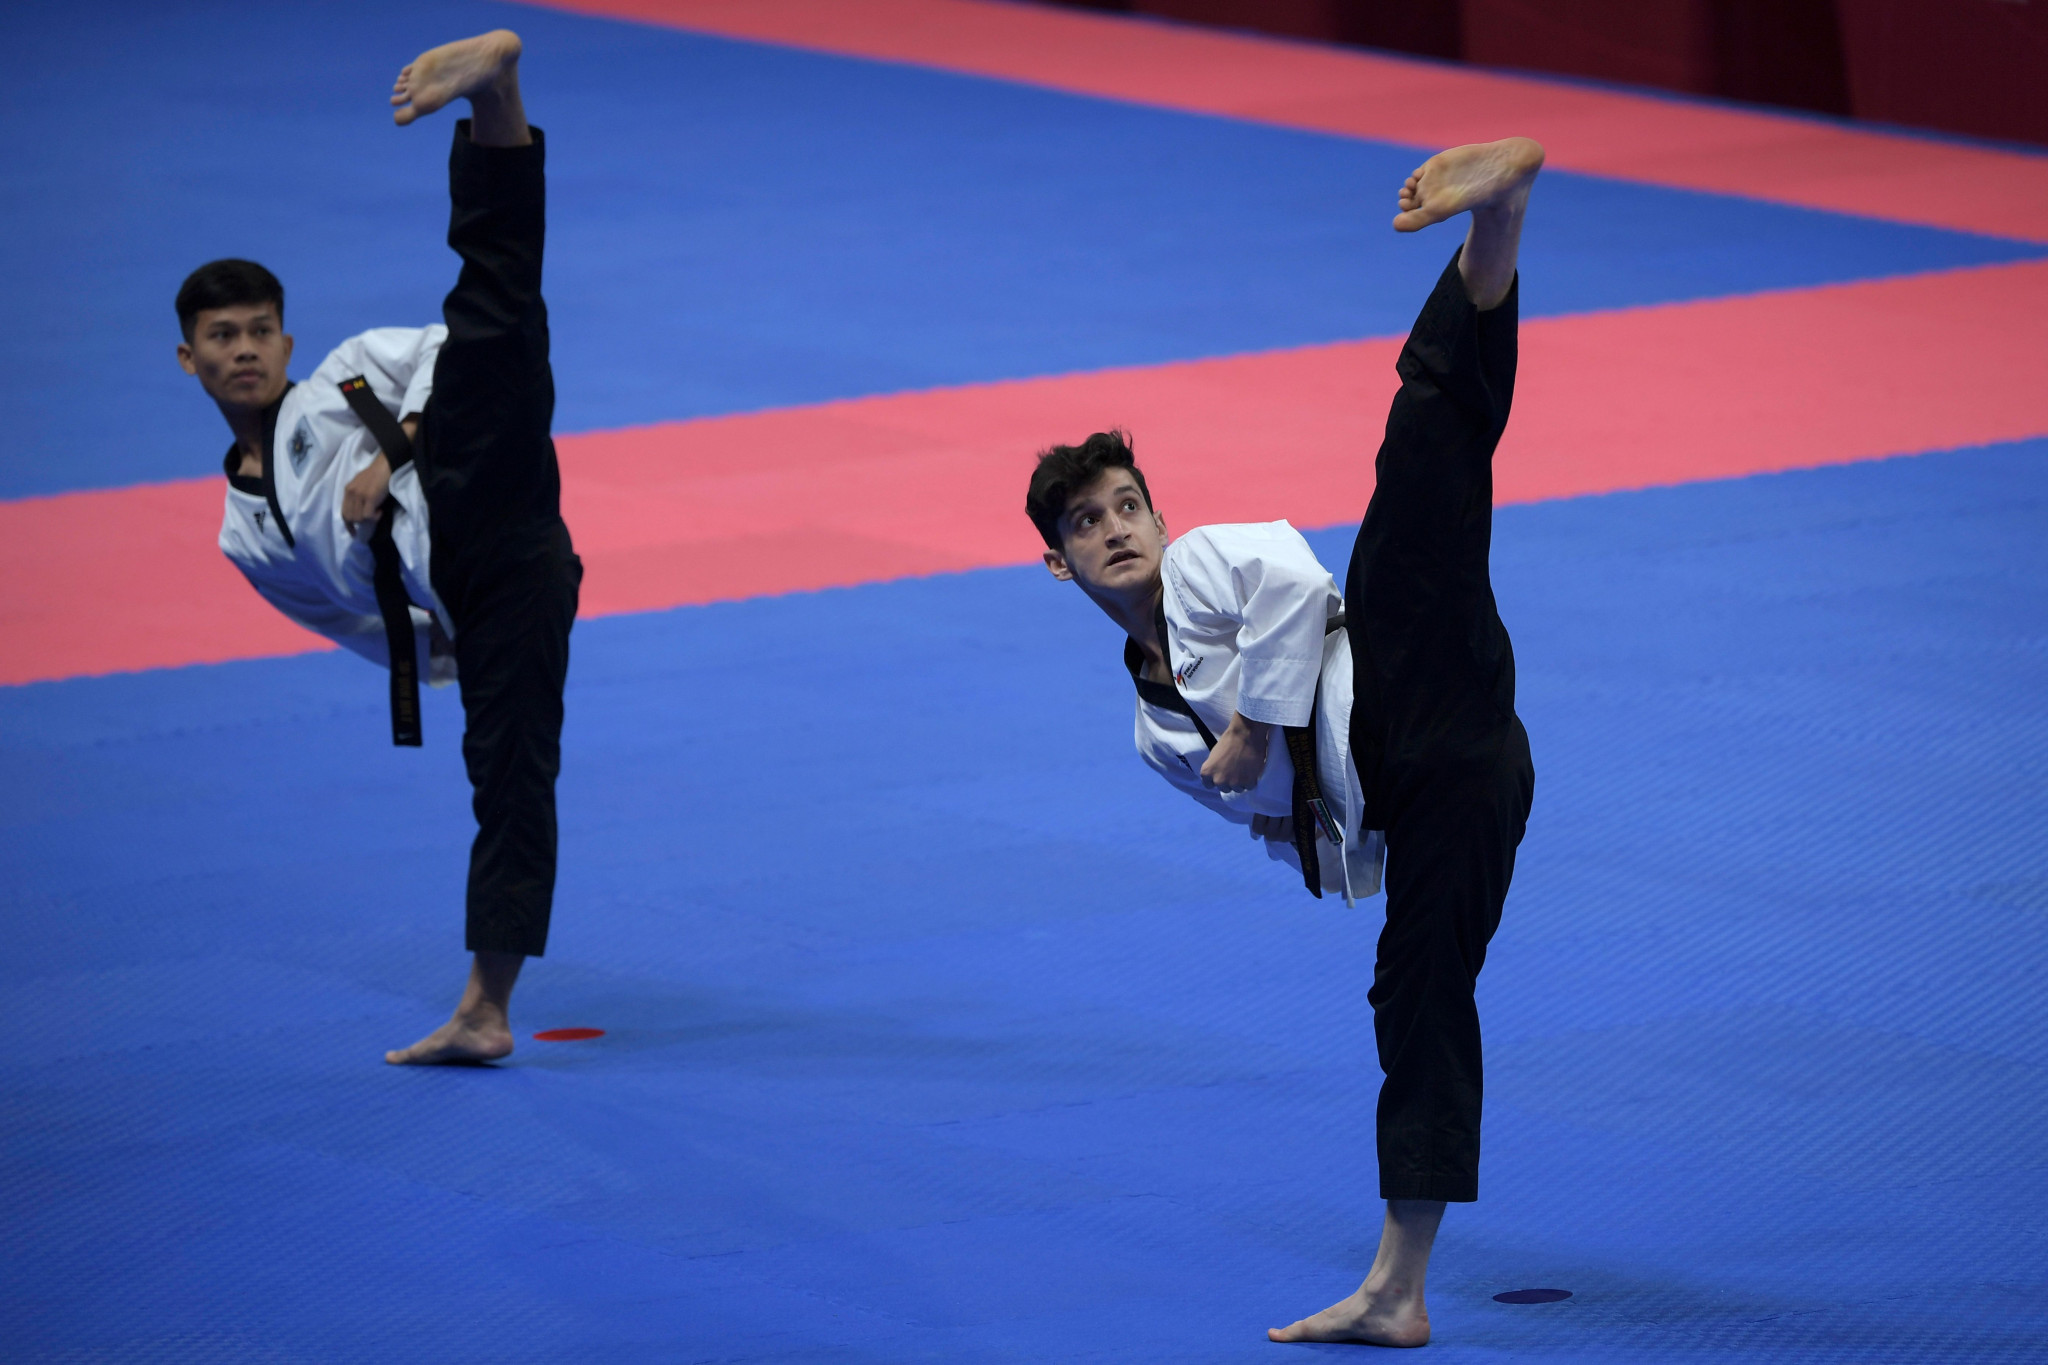 Iran's World Poomsae Taekwondo Championships team announced